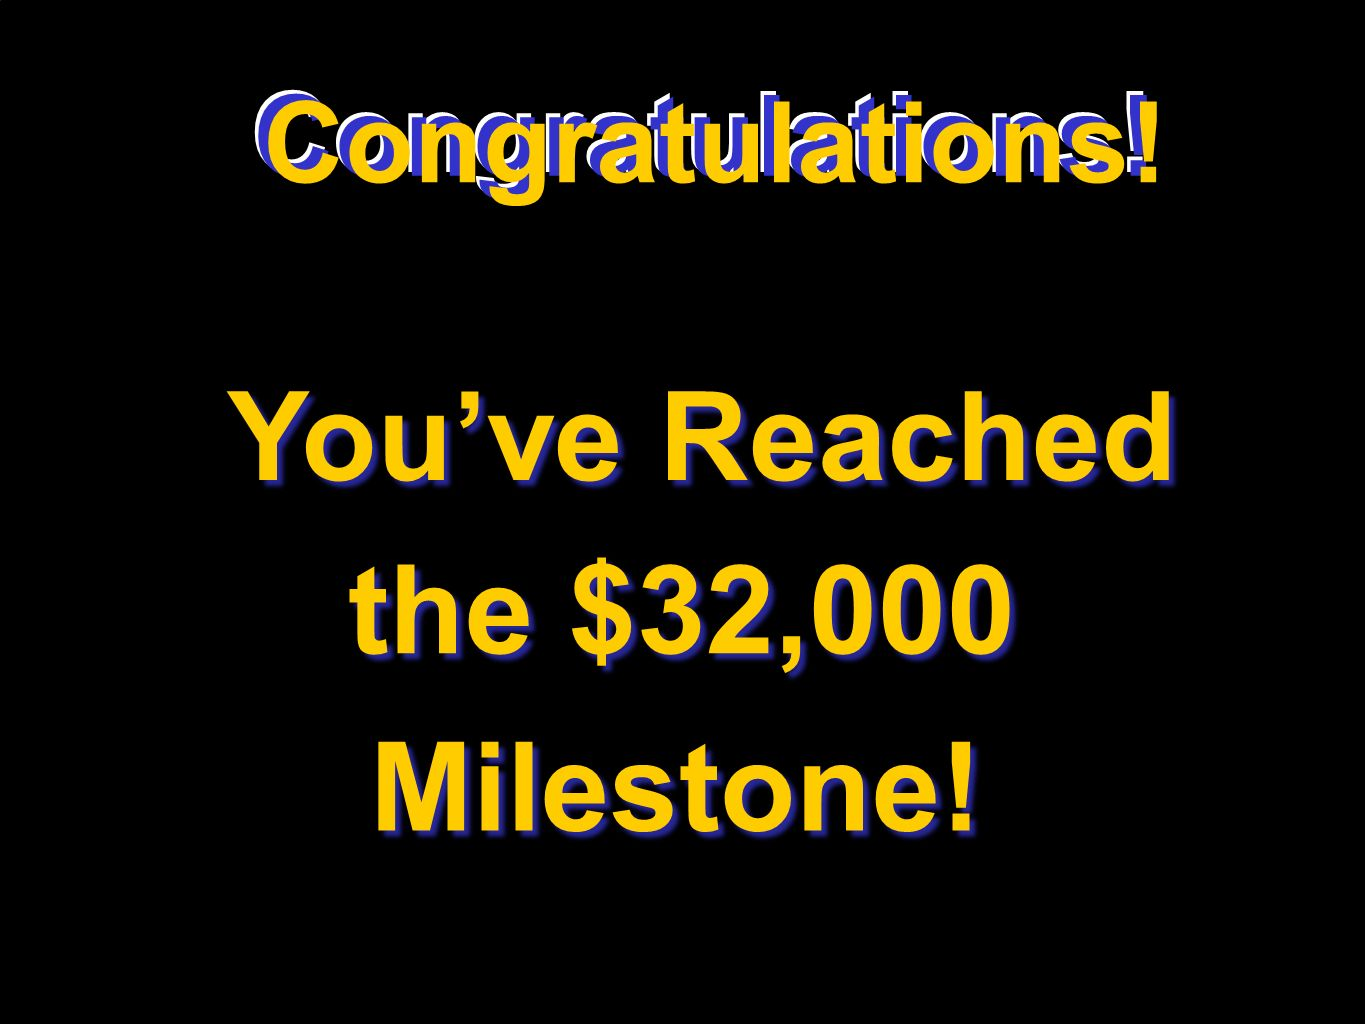 Congratulations! Youve Reached the $32,000 Milestone! Congratulations!